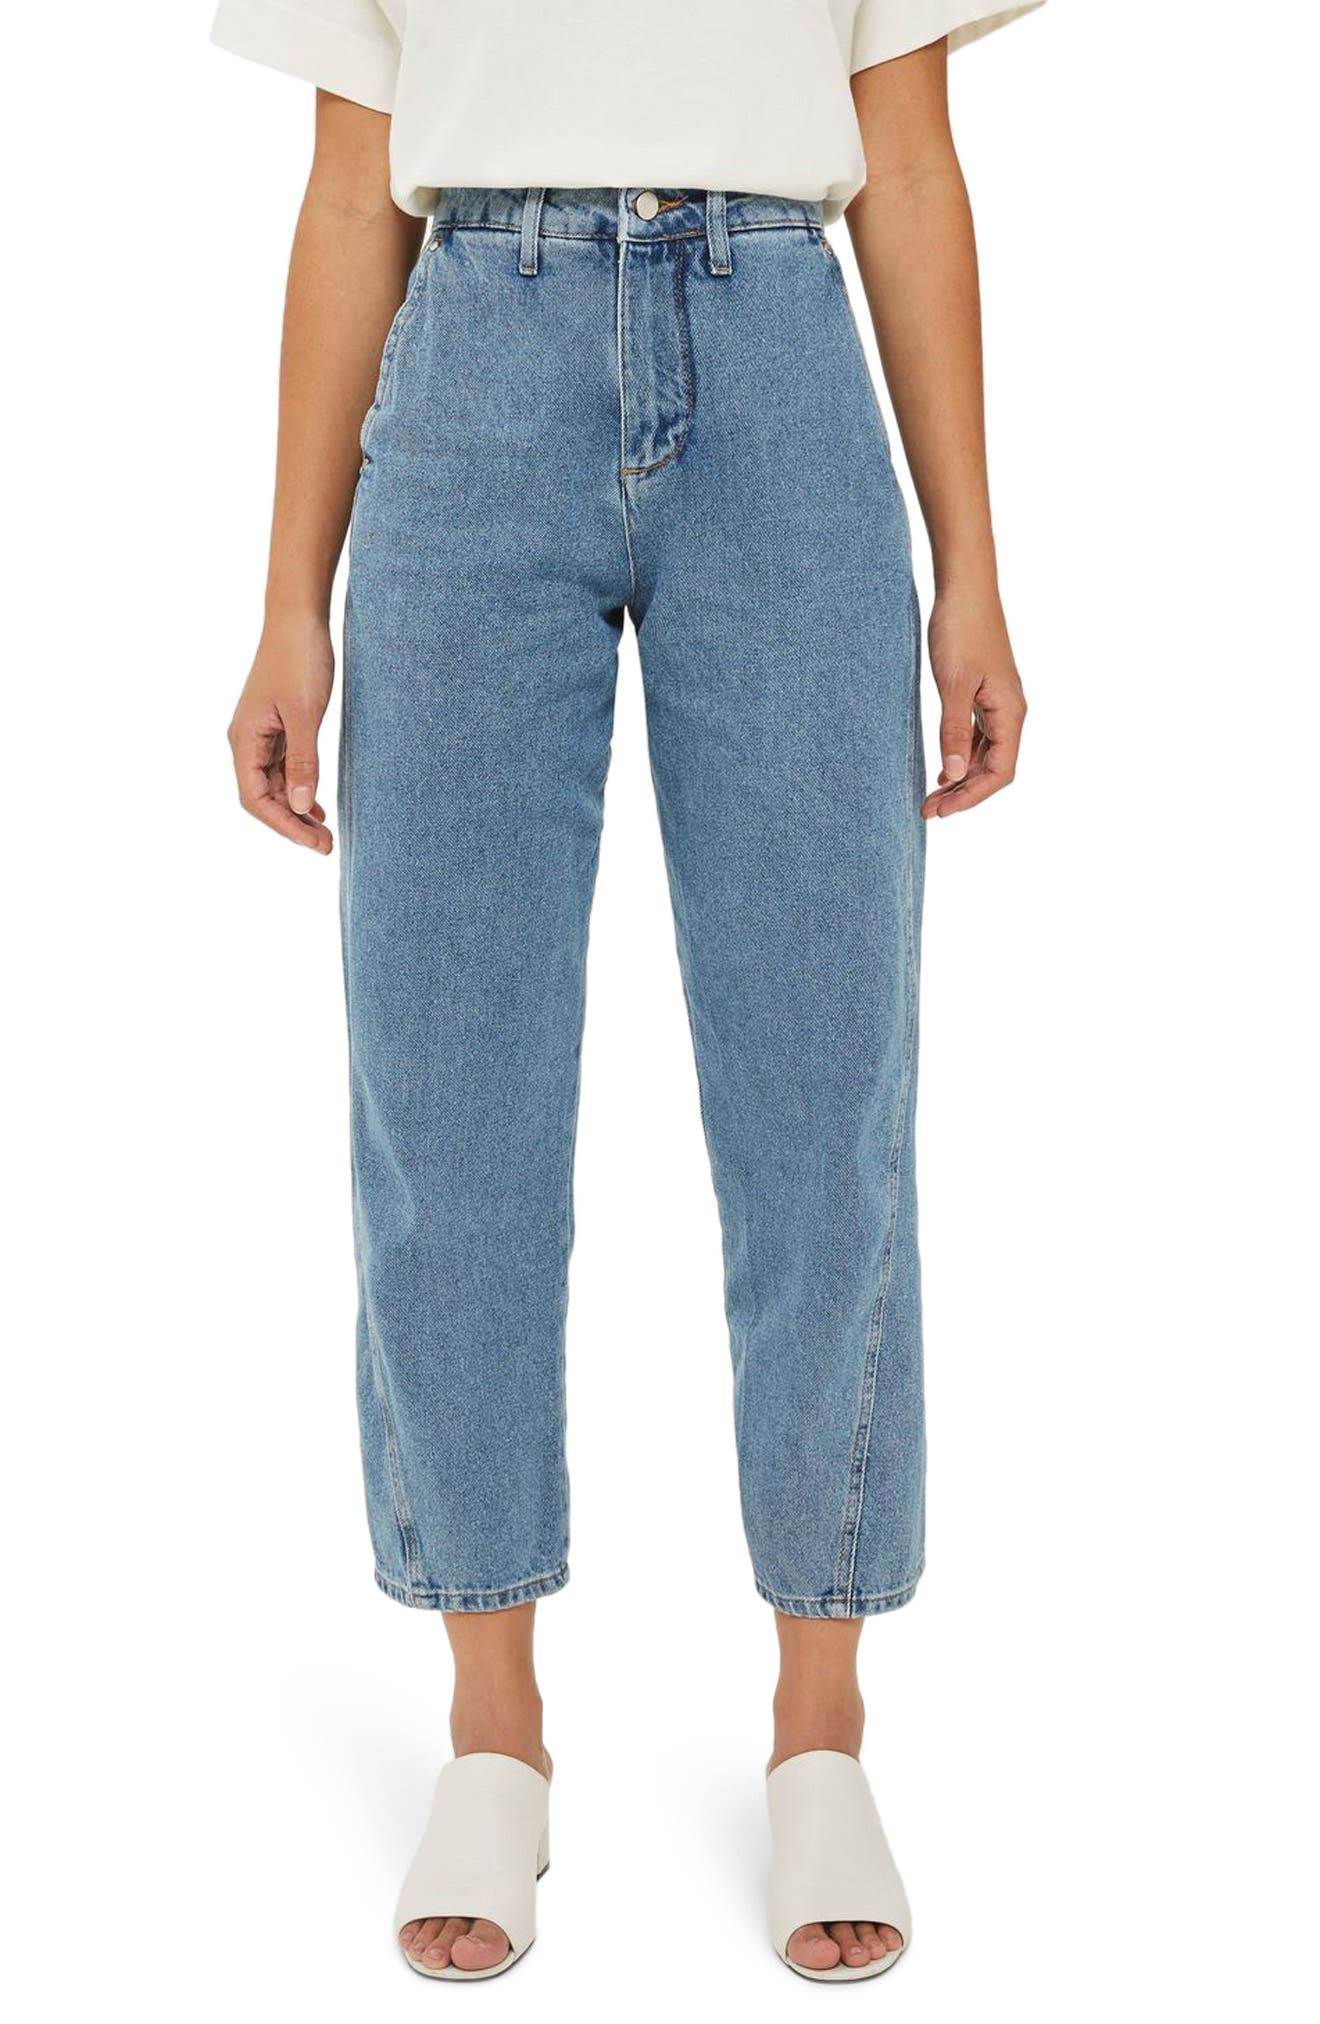 Alternate Image 1 Selected - Topshop Boutique Displaced Seam Boyfriend Jeans